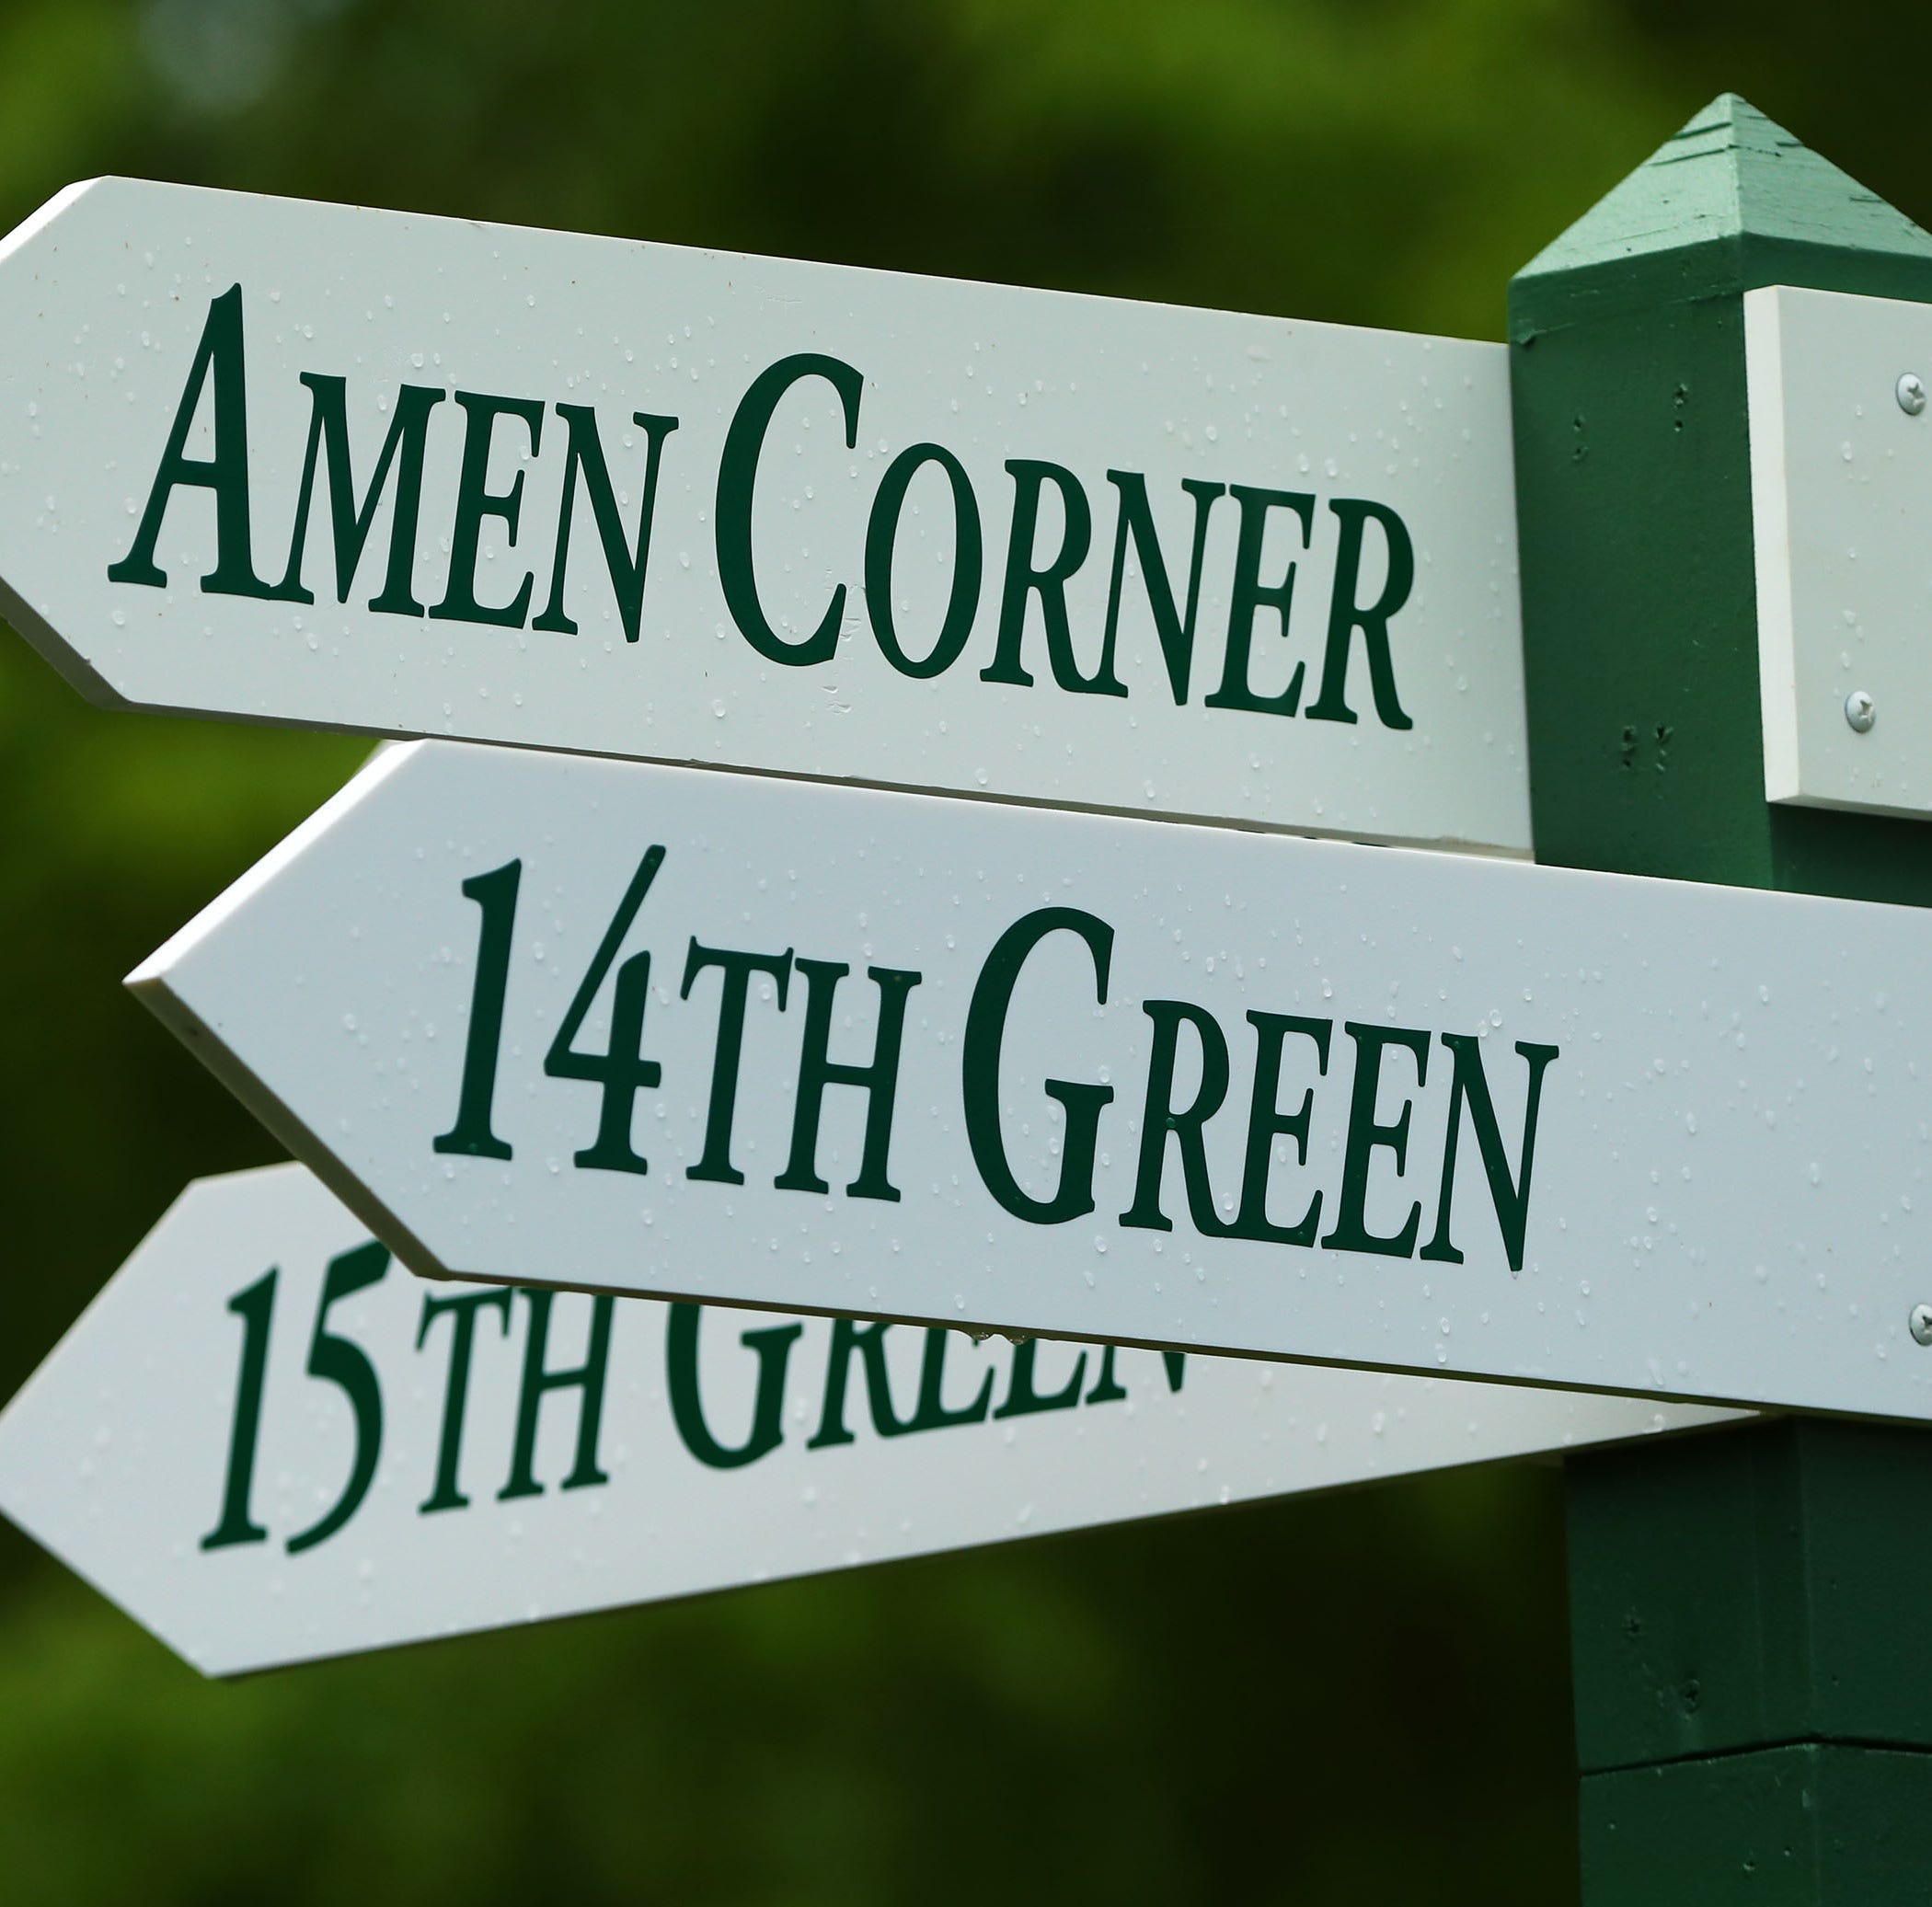 The Masters experience is unforgettable: From Amen Corner to pimiento cheese sandwiches